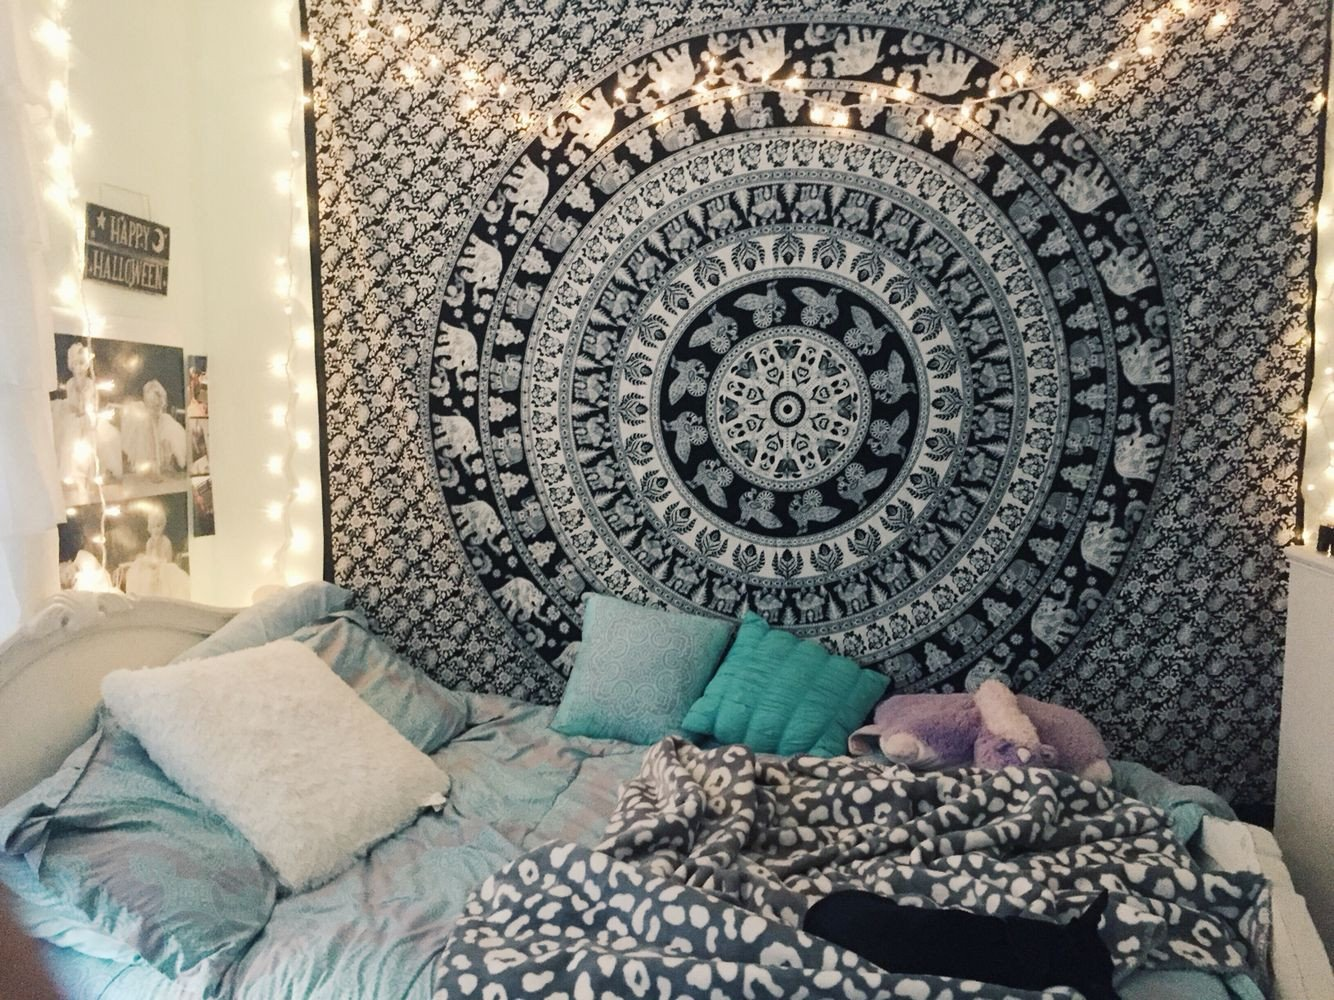 Teal and Black Bedroom Ideas Best Of Tumblr Bedroom Inspiration Lights Tapestry Pillows